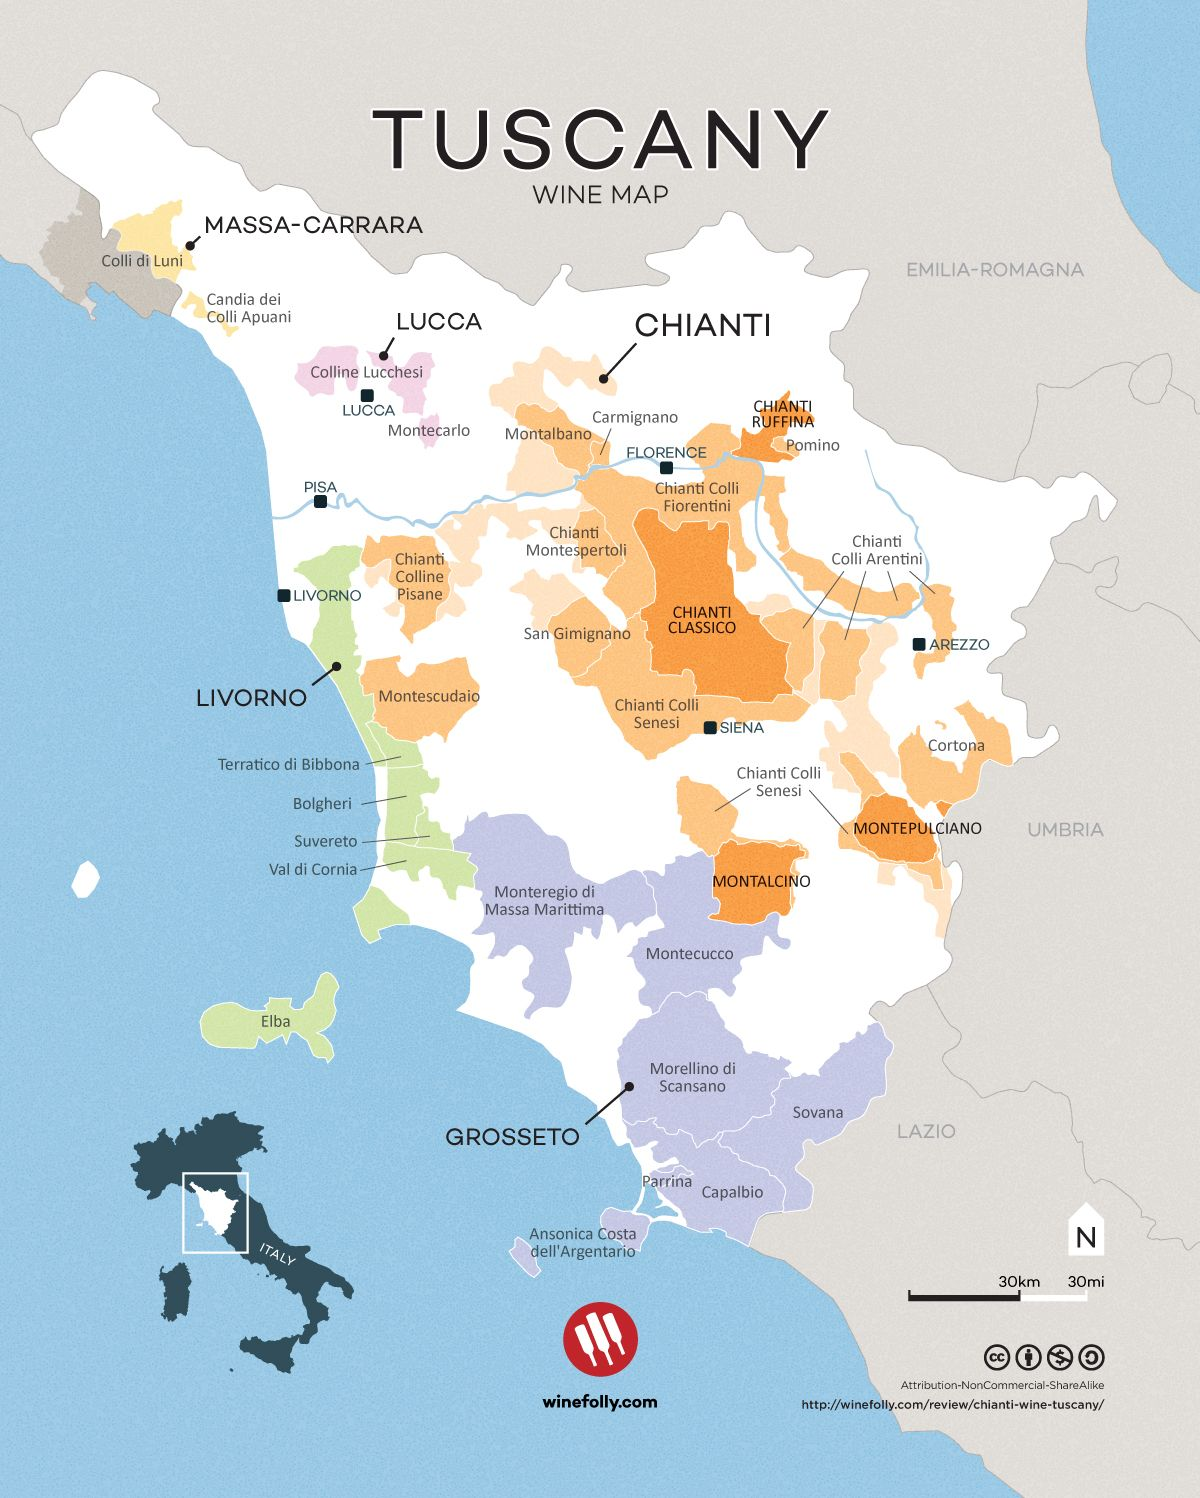 Tuscany On Map Of Italy.Ta Krasia Ths Toskanhs Video Wine Info Chianti Wine Italian